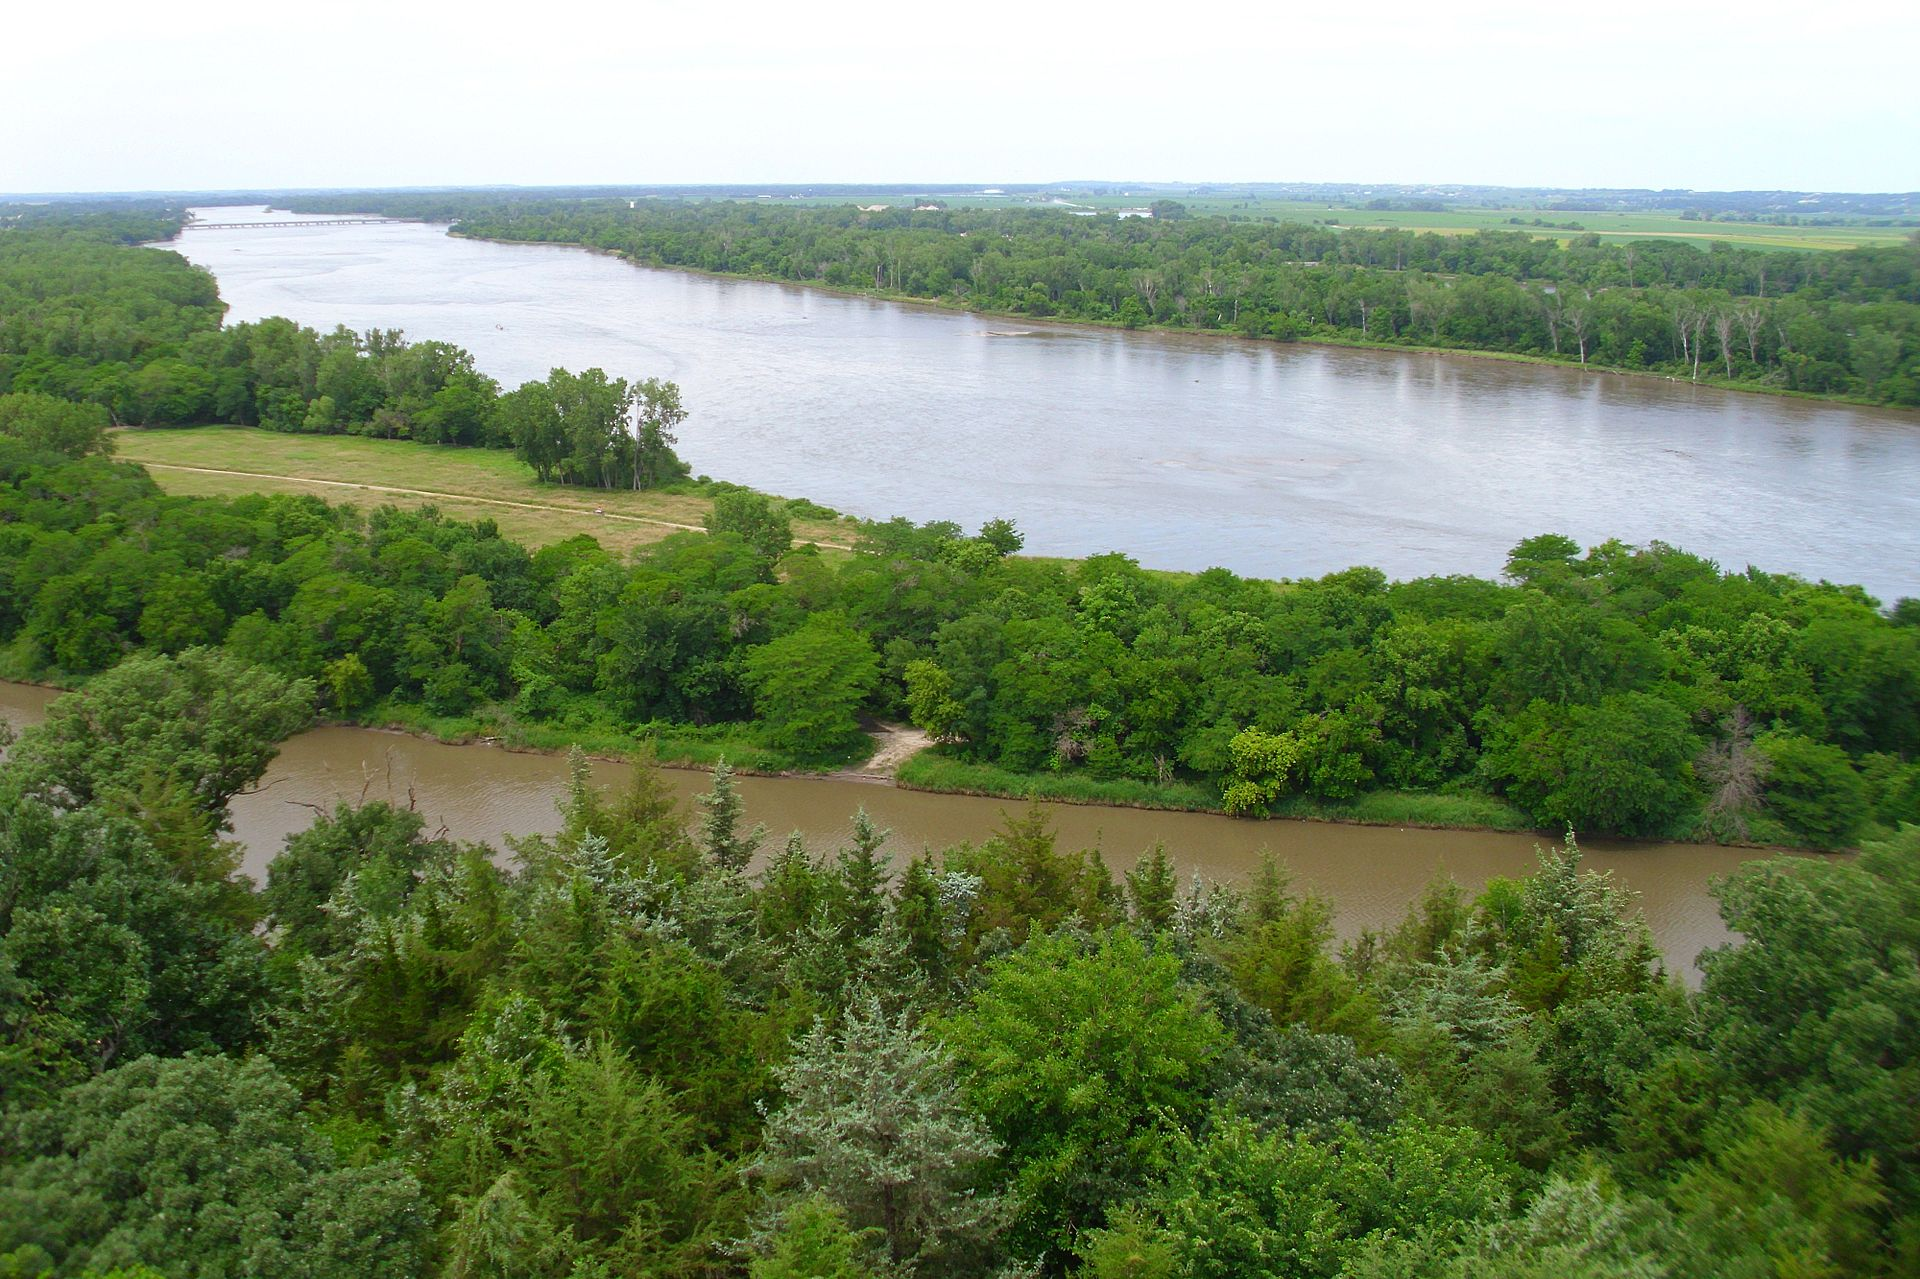 Platte River Location Platte River - Wikiped...